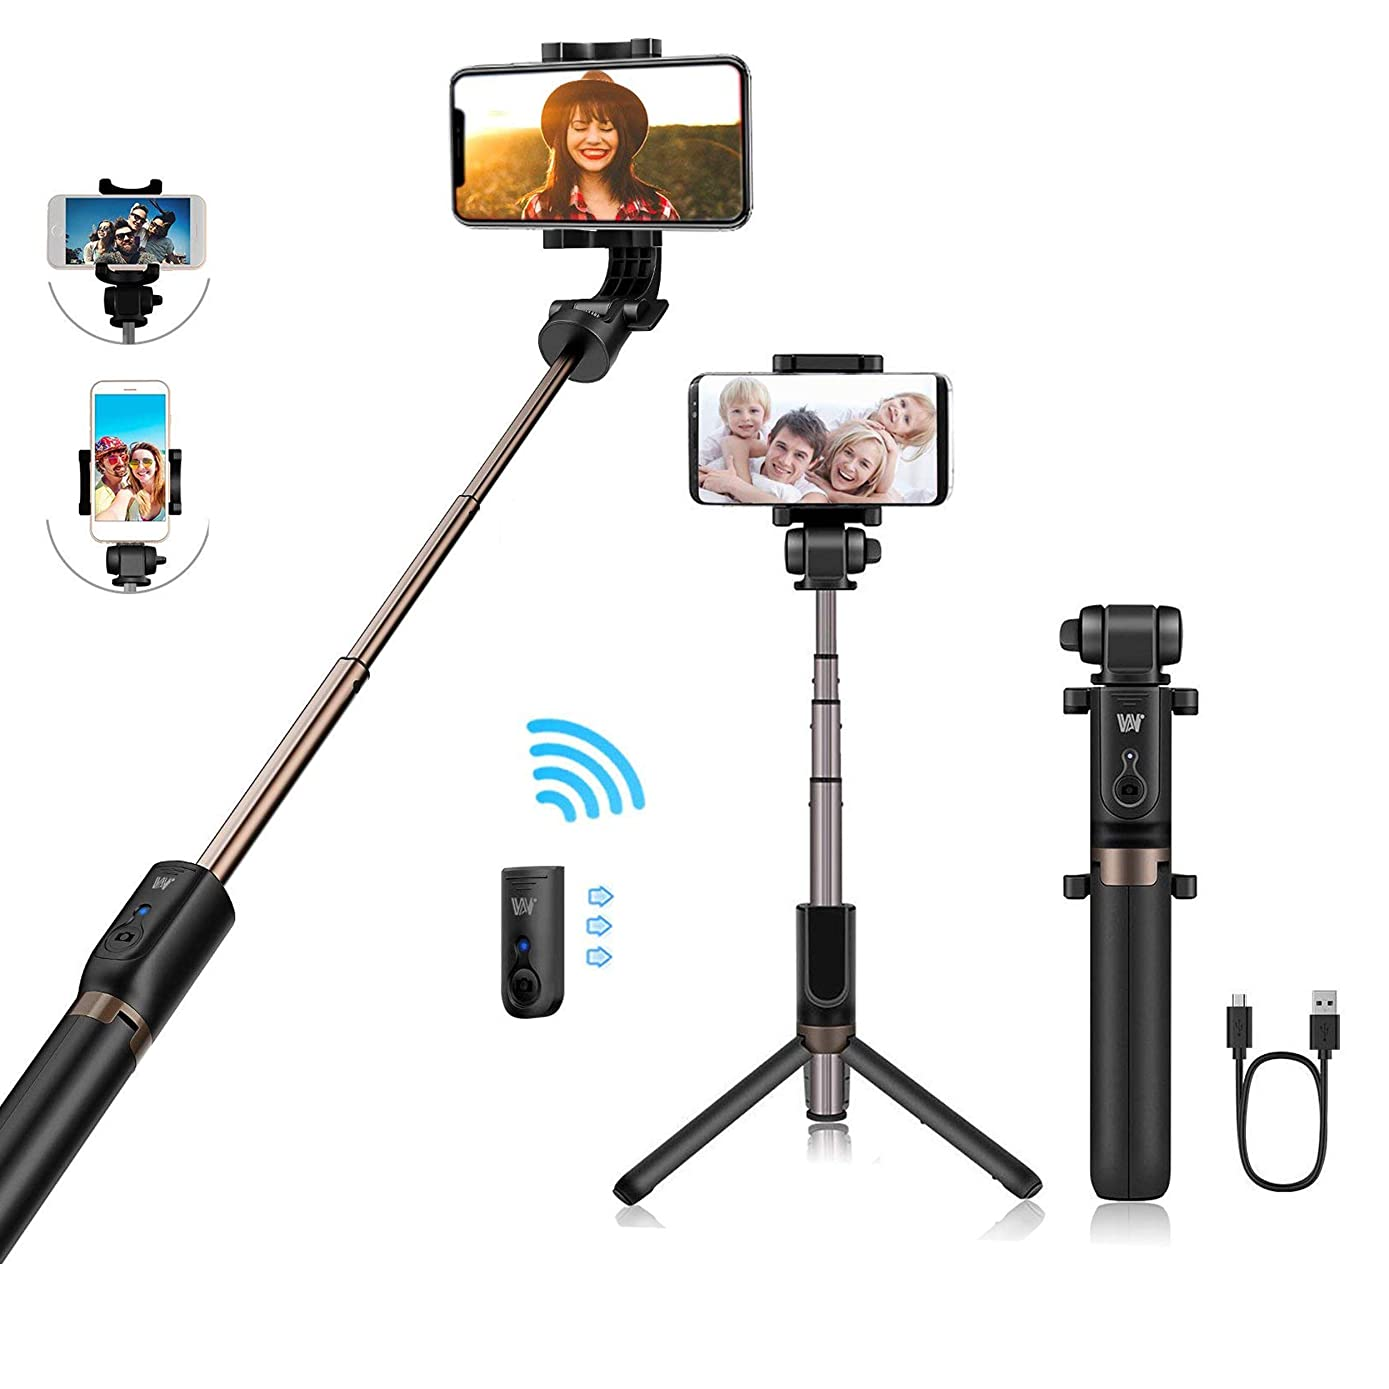 TRONOE Selfie Stick Bluetooth, 2 in 1 Extendable Monopod Selfie Stick with Bluetooth Detachable Remote,Adjustable Head,Selfie Stick Tripod Compatible iPhone/Huawei/Samsung with Charging Cable (Black)